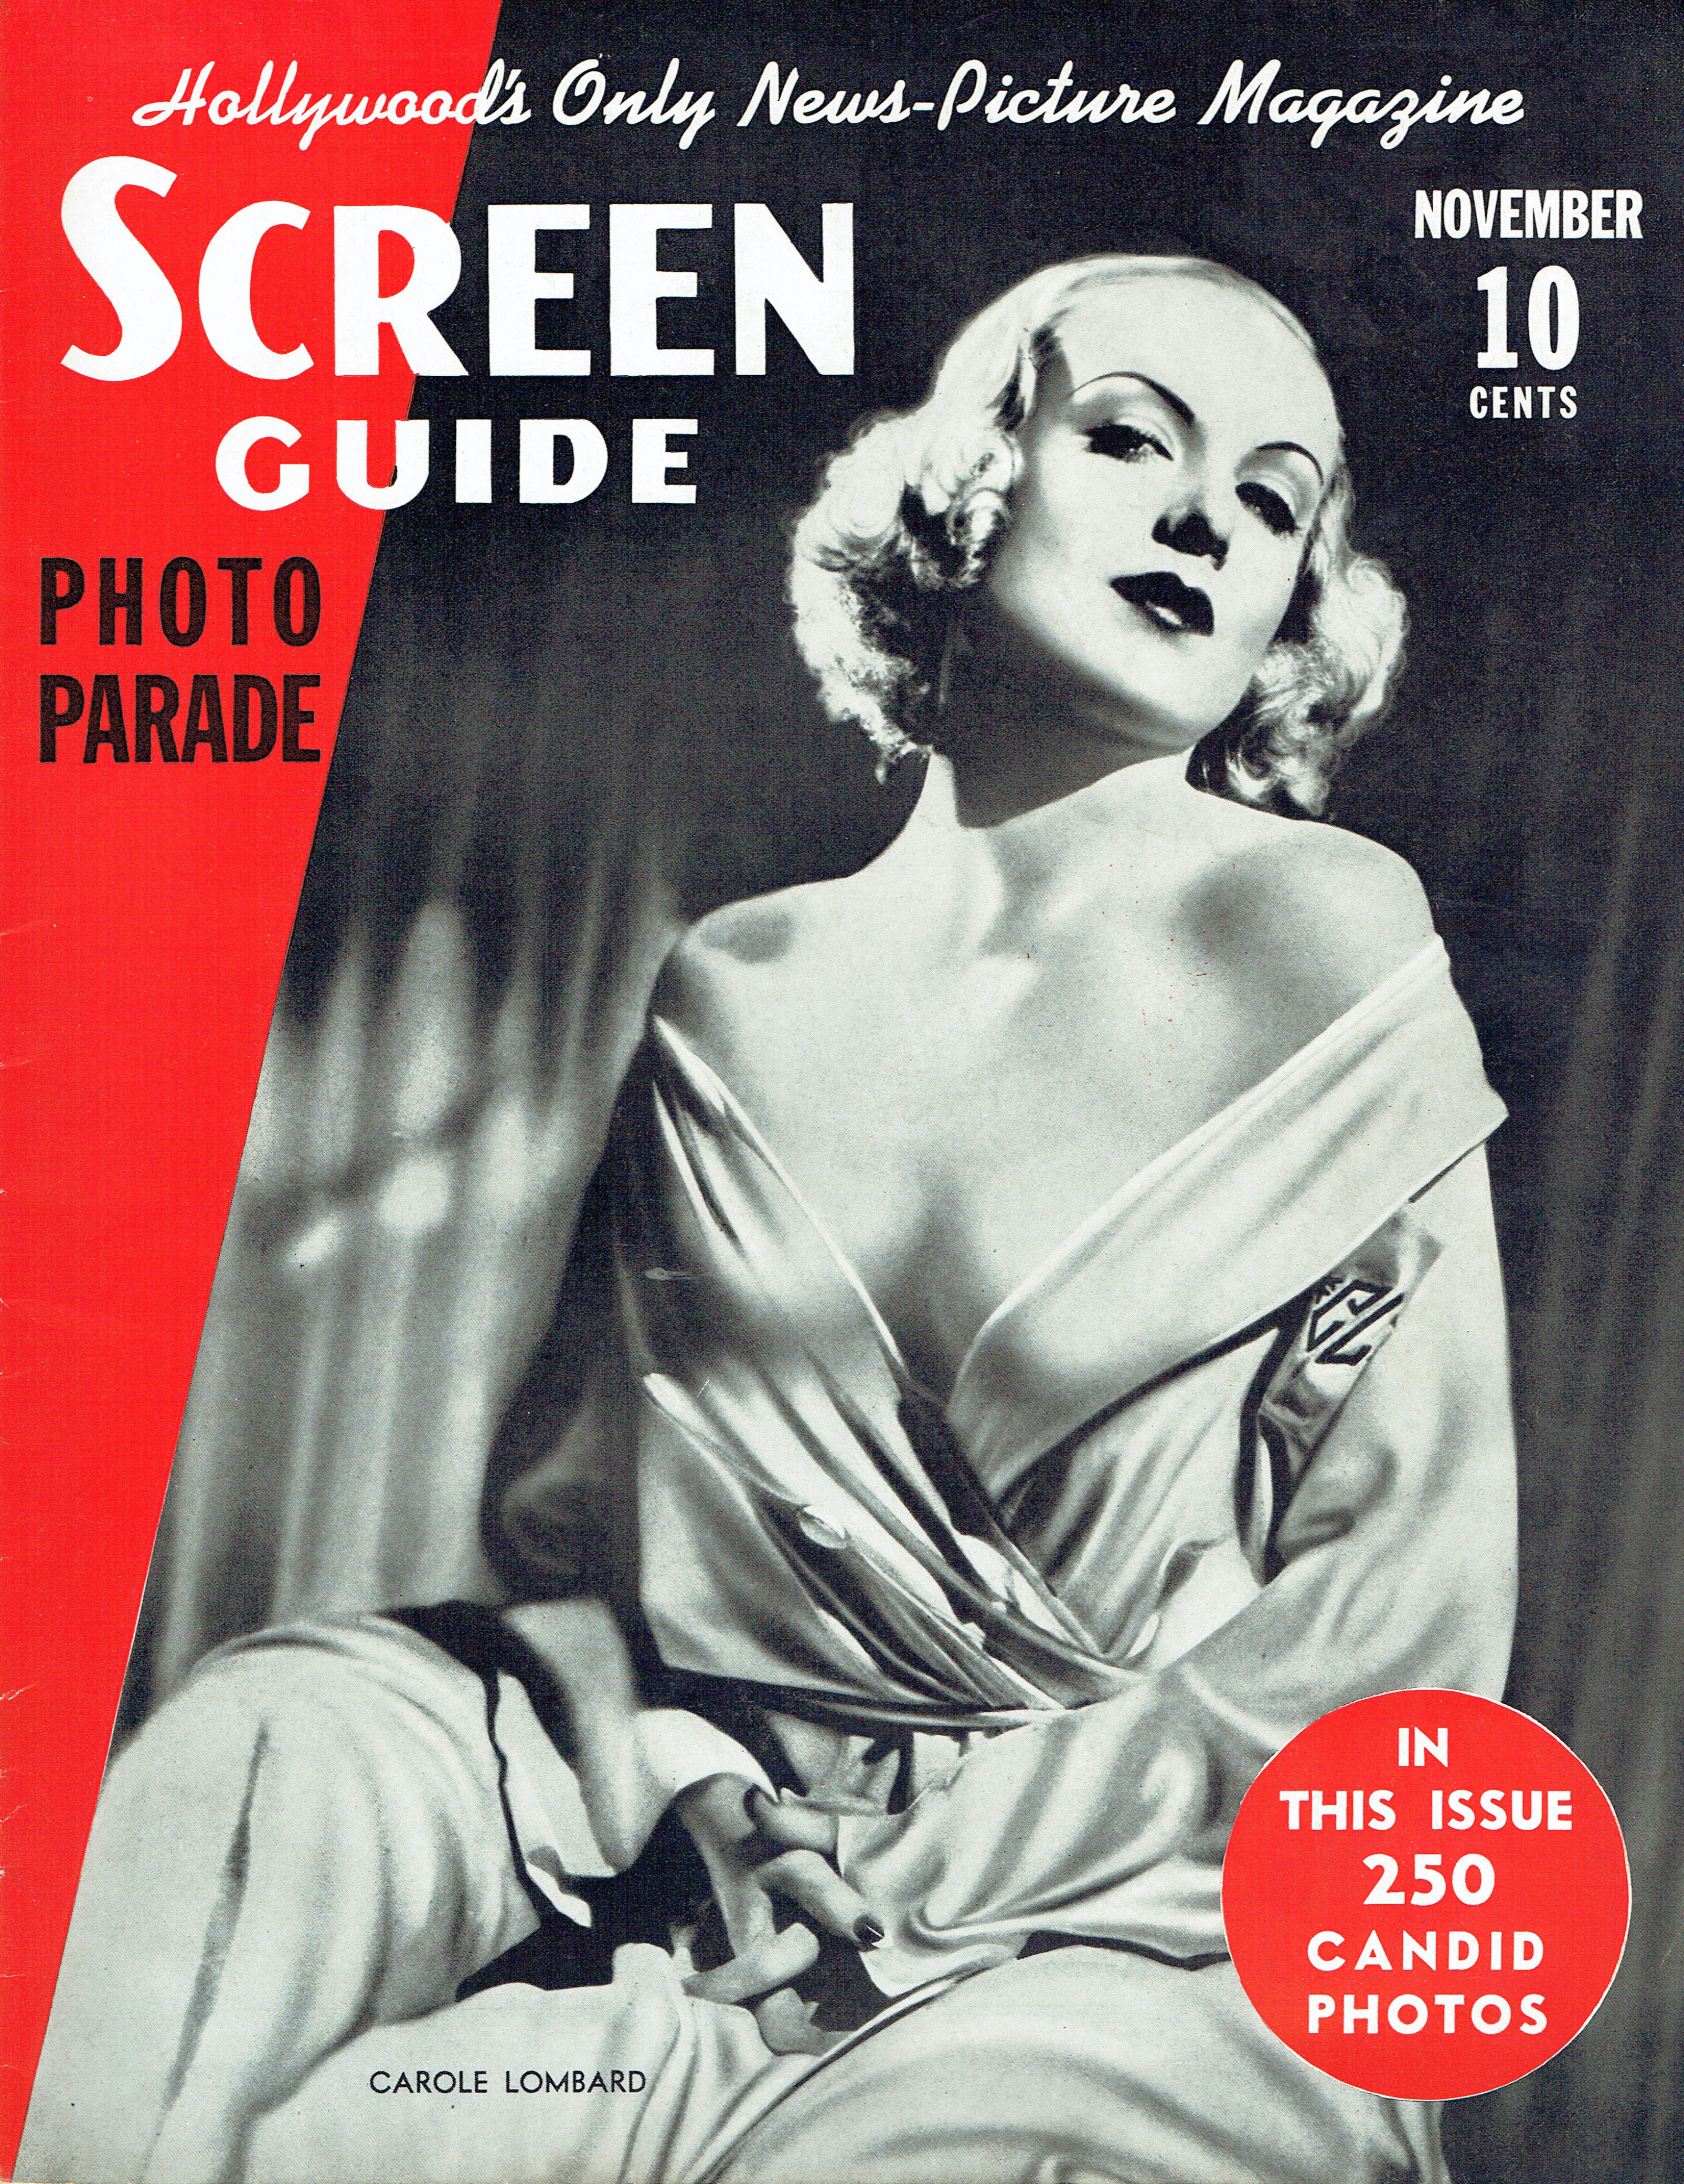 carole lombard screen guide november 1937 cover large